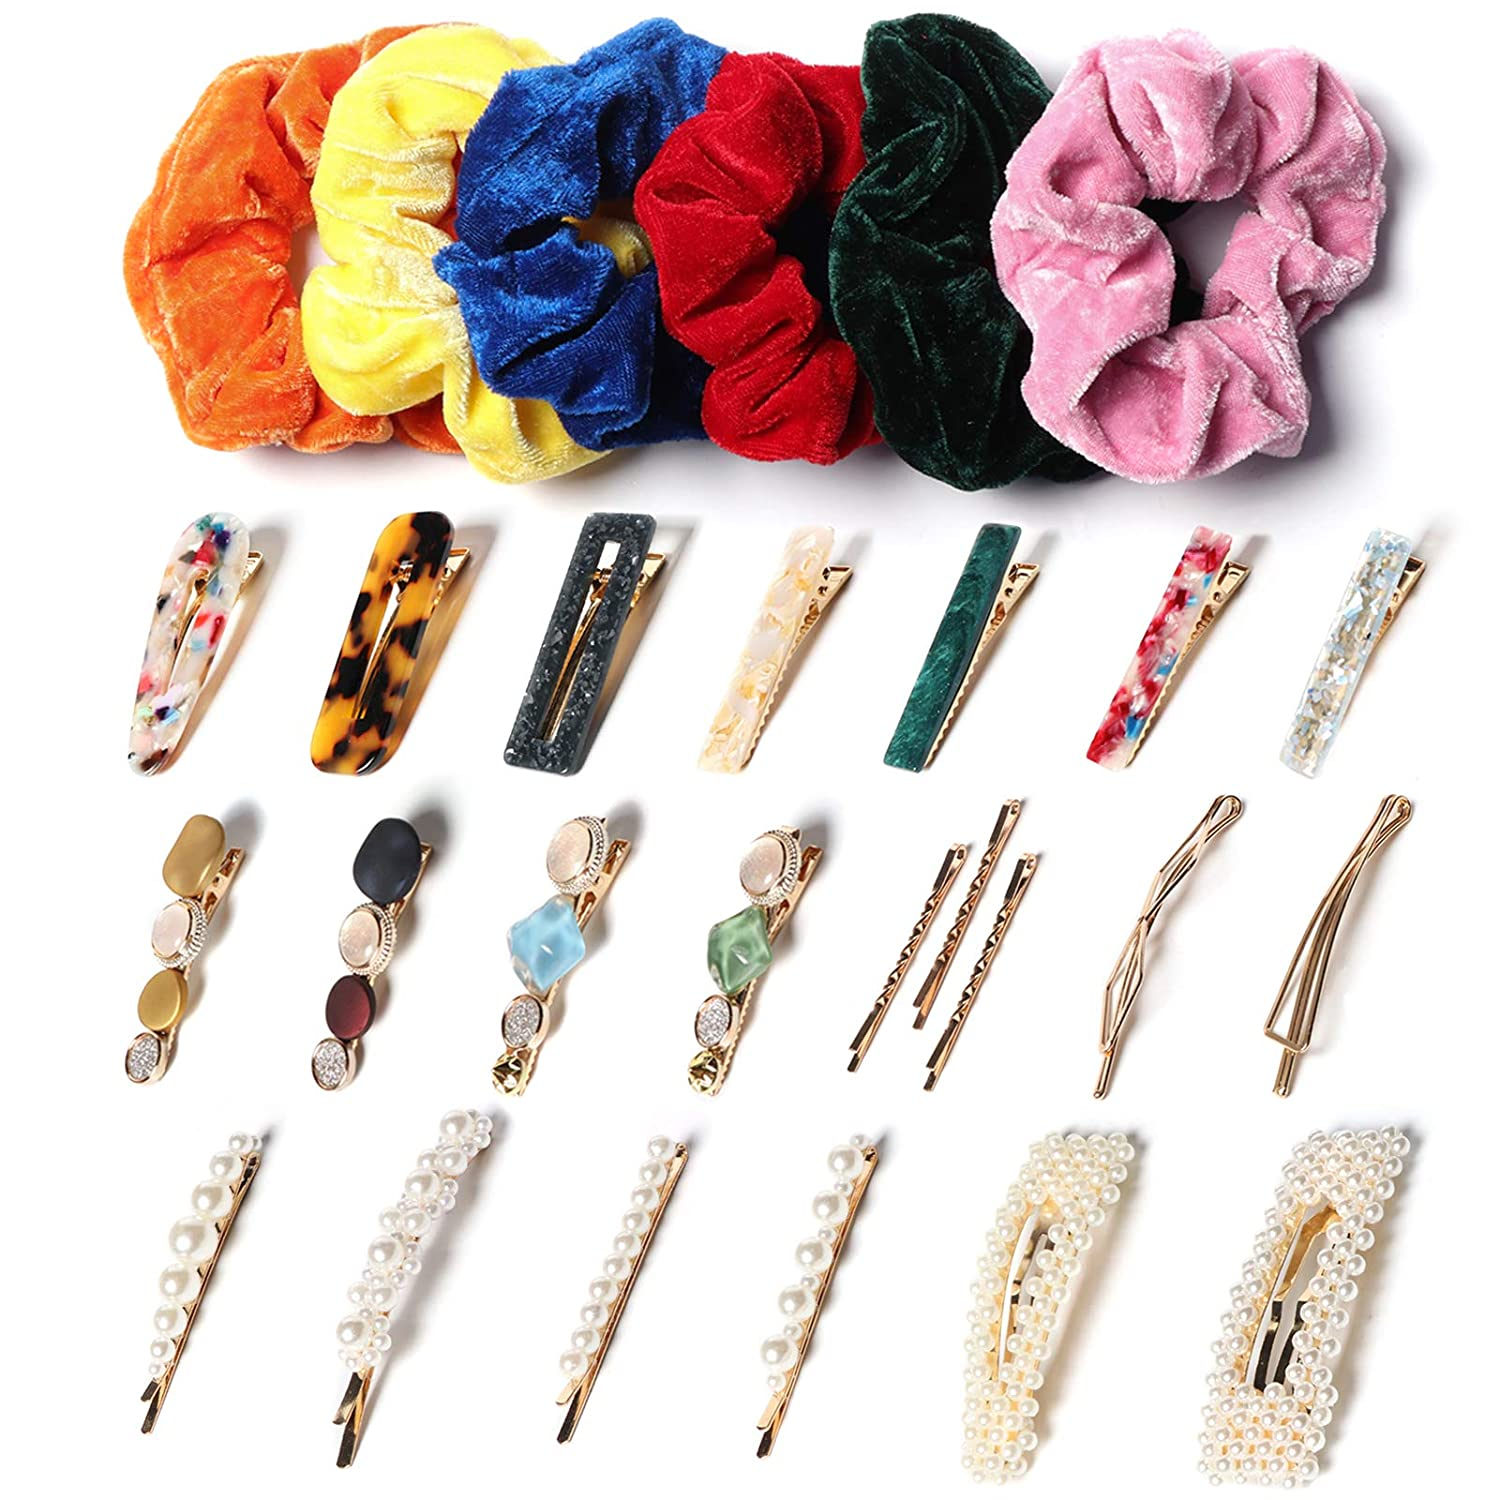 Barrettes for Women, Cute Hair Clips & Velvet Hair Scrunchies Set,Hair Pins Hair Accessories for Women Girls(28 PCS)